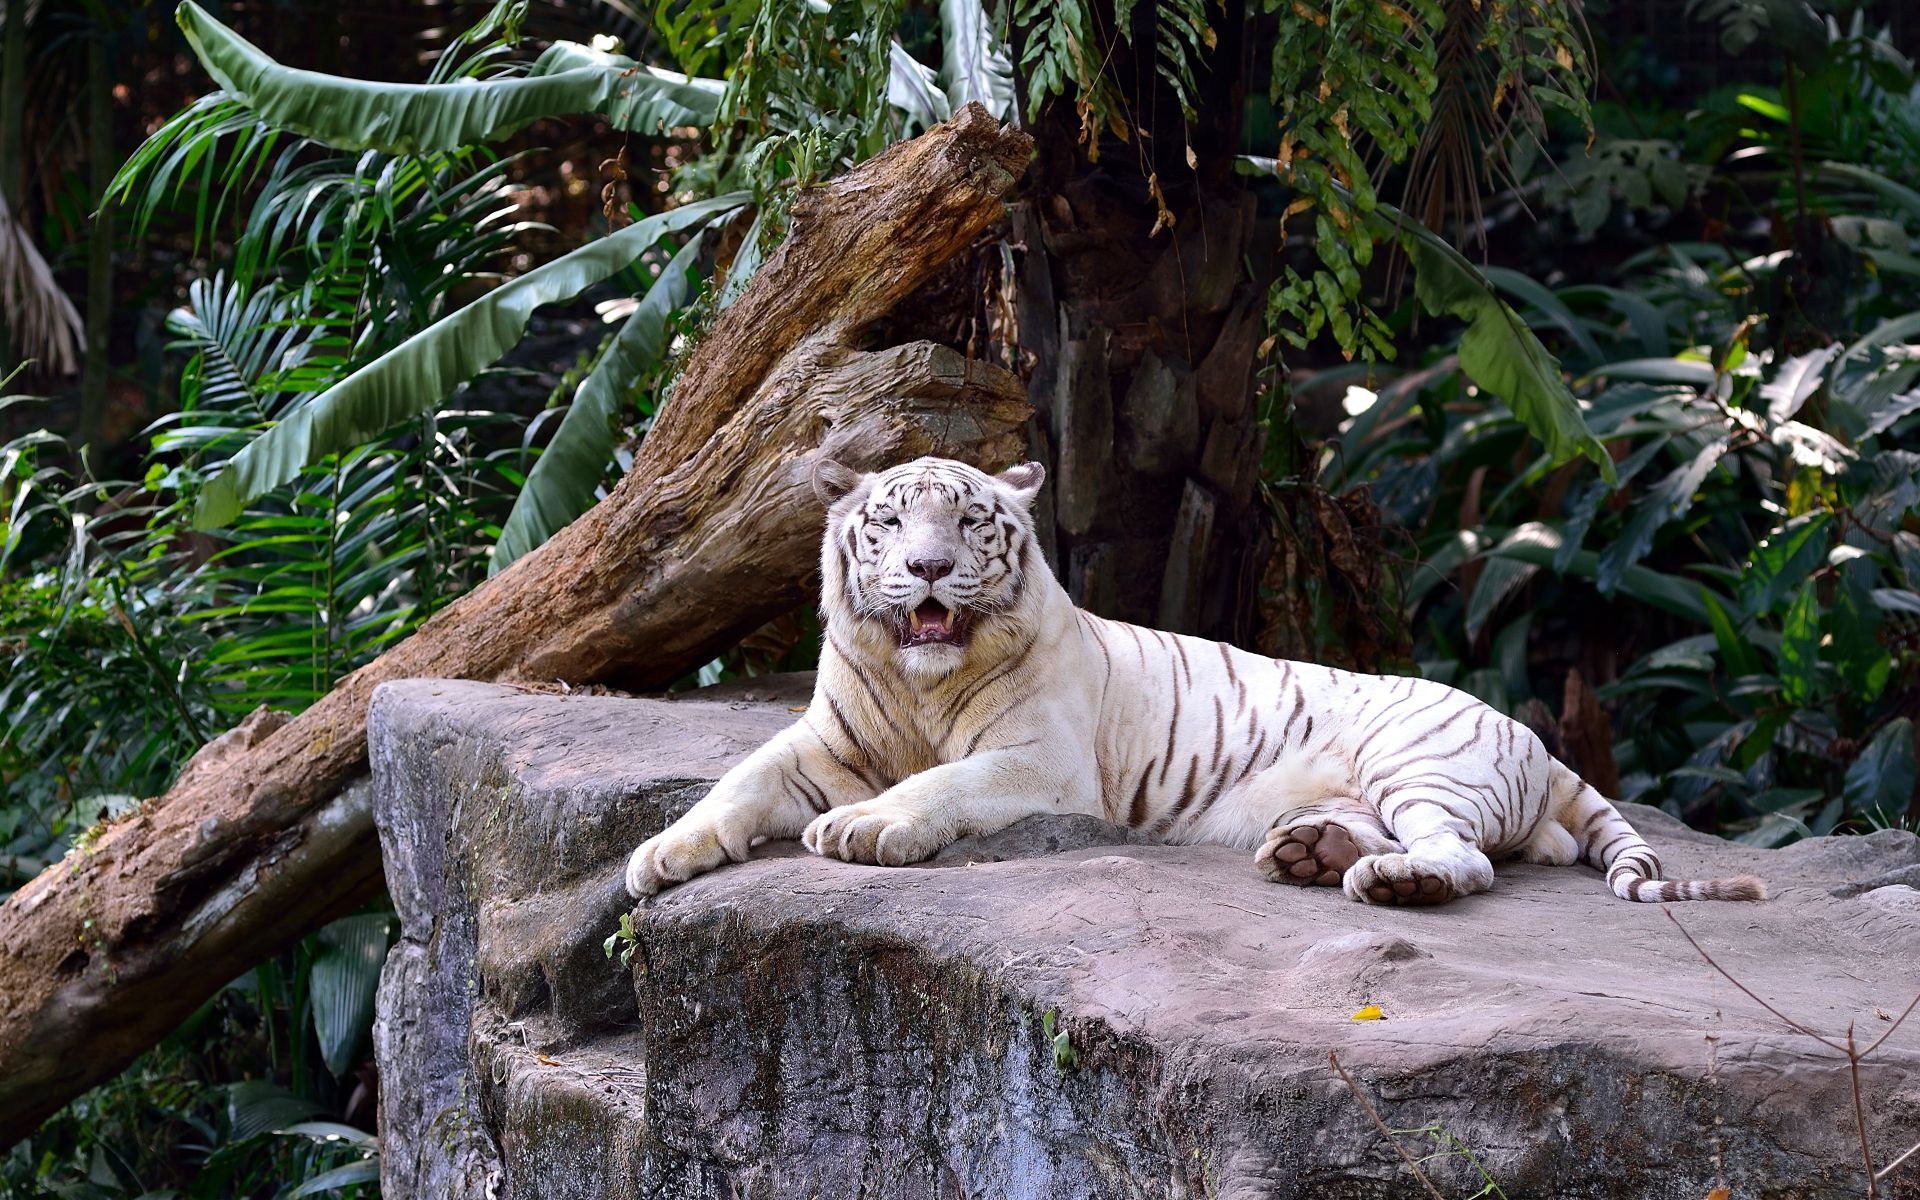 White Tiger resting on the stone, Best Wallpaper